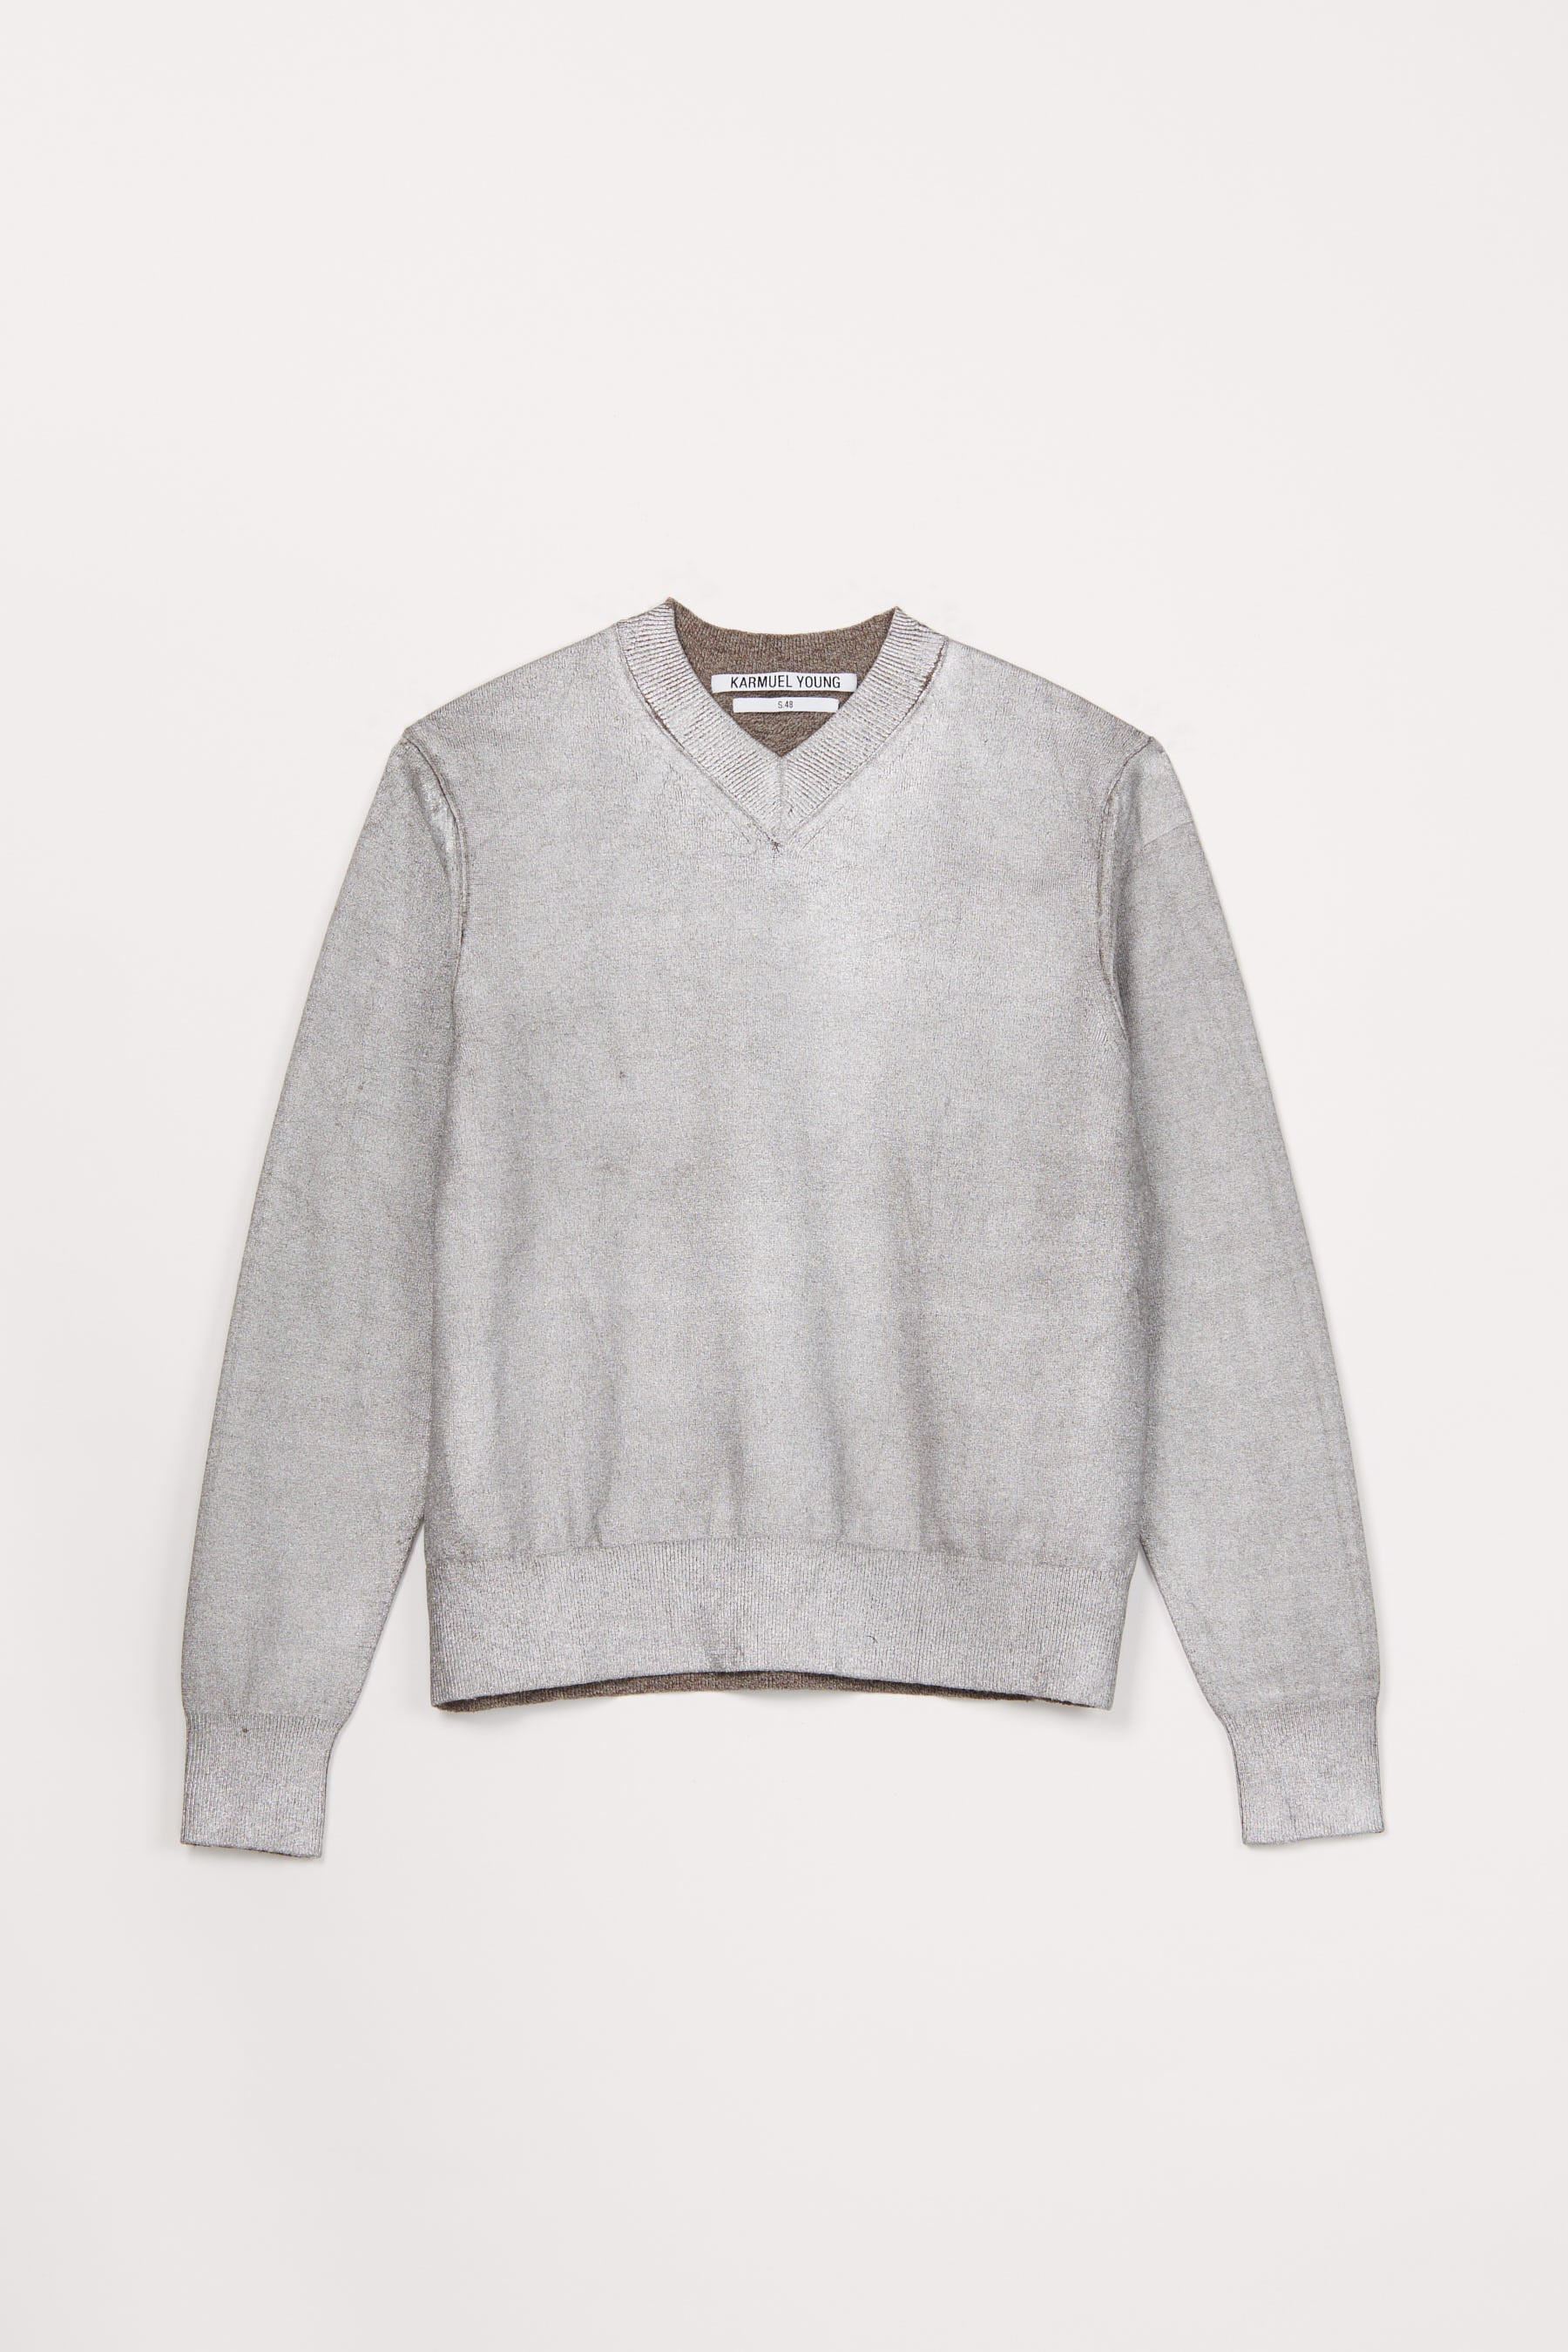 Silver Foiled Merino Wool V-mockneck Sweater